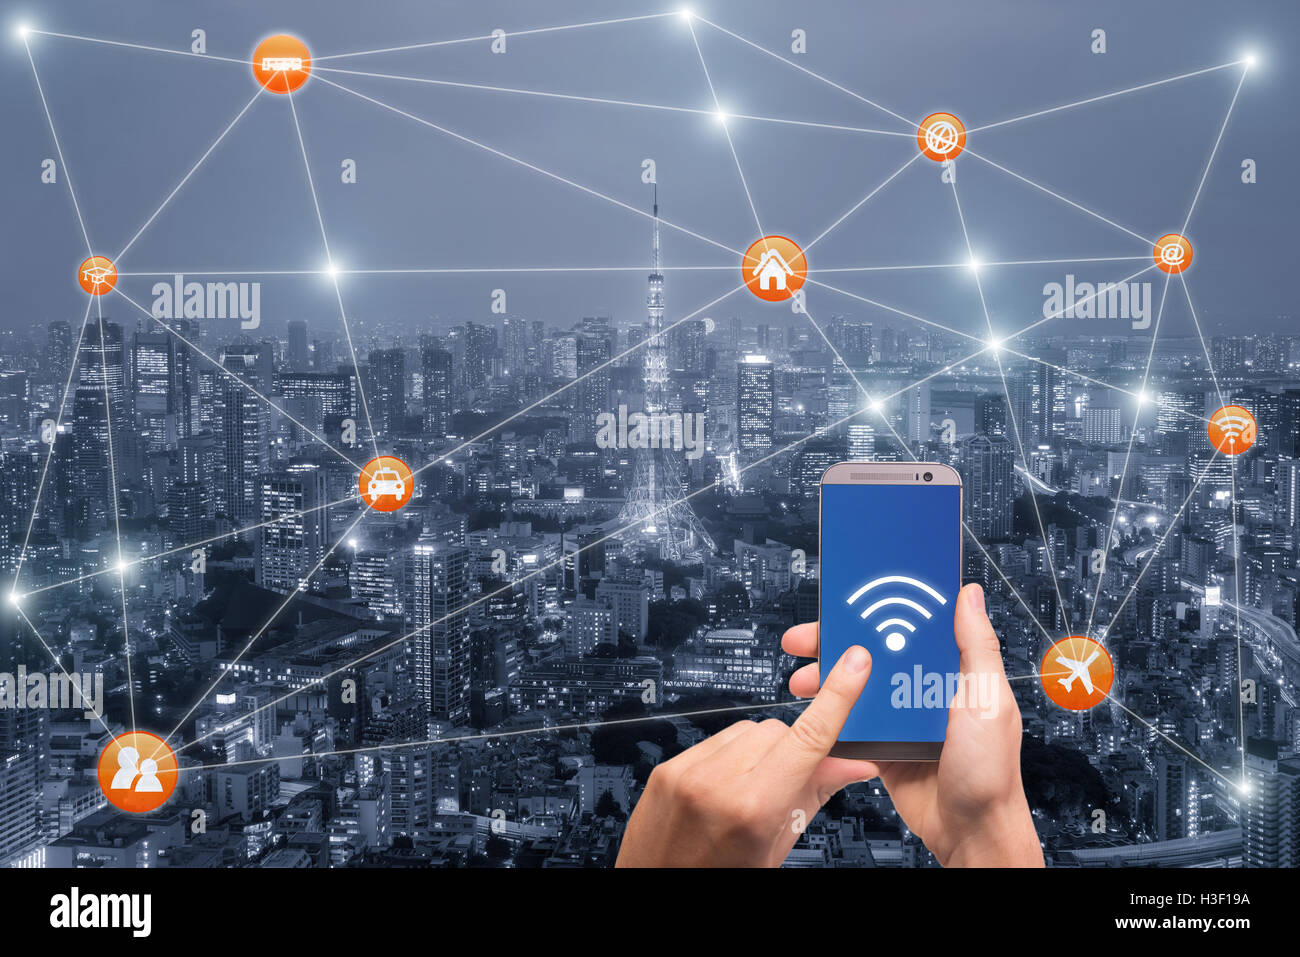 Hand holding smartphone with Tokyo city scape and wifi network connection. Smart city network connection concept - Stock Image